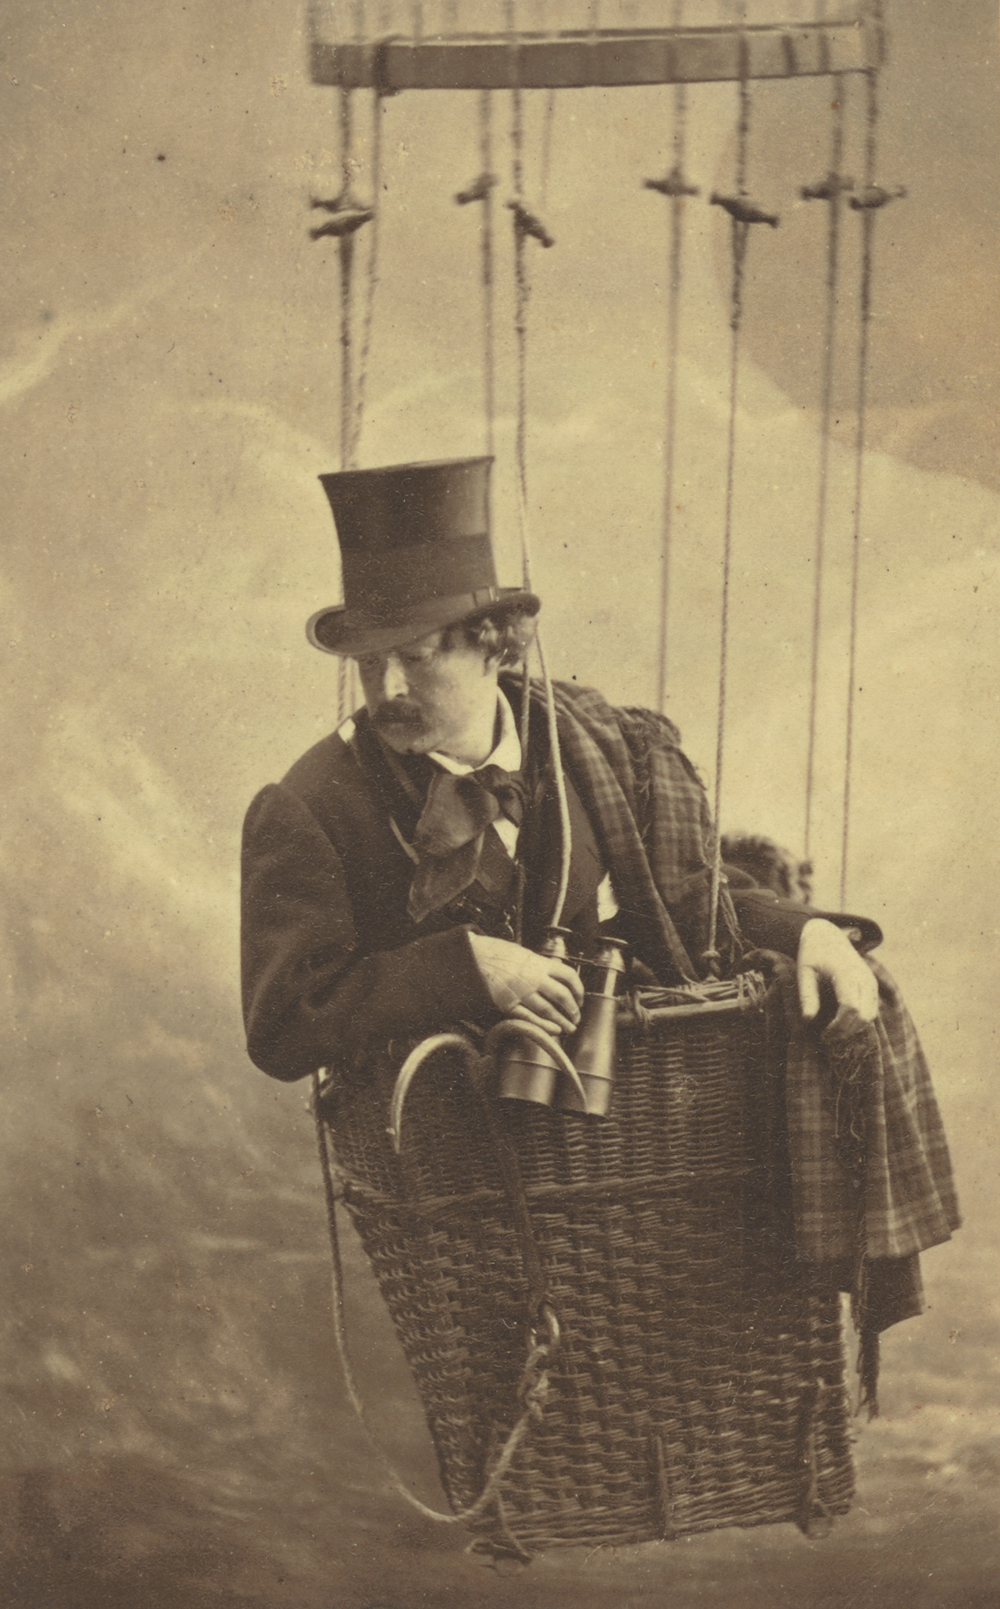 Félix Nadar in gondola of balloon, c. 1863. Photograph by Félix Nadar. The J. Paul Getty Museum.